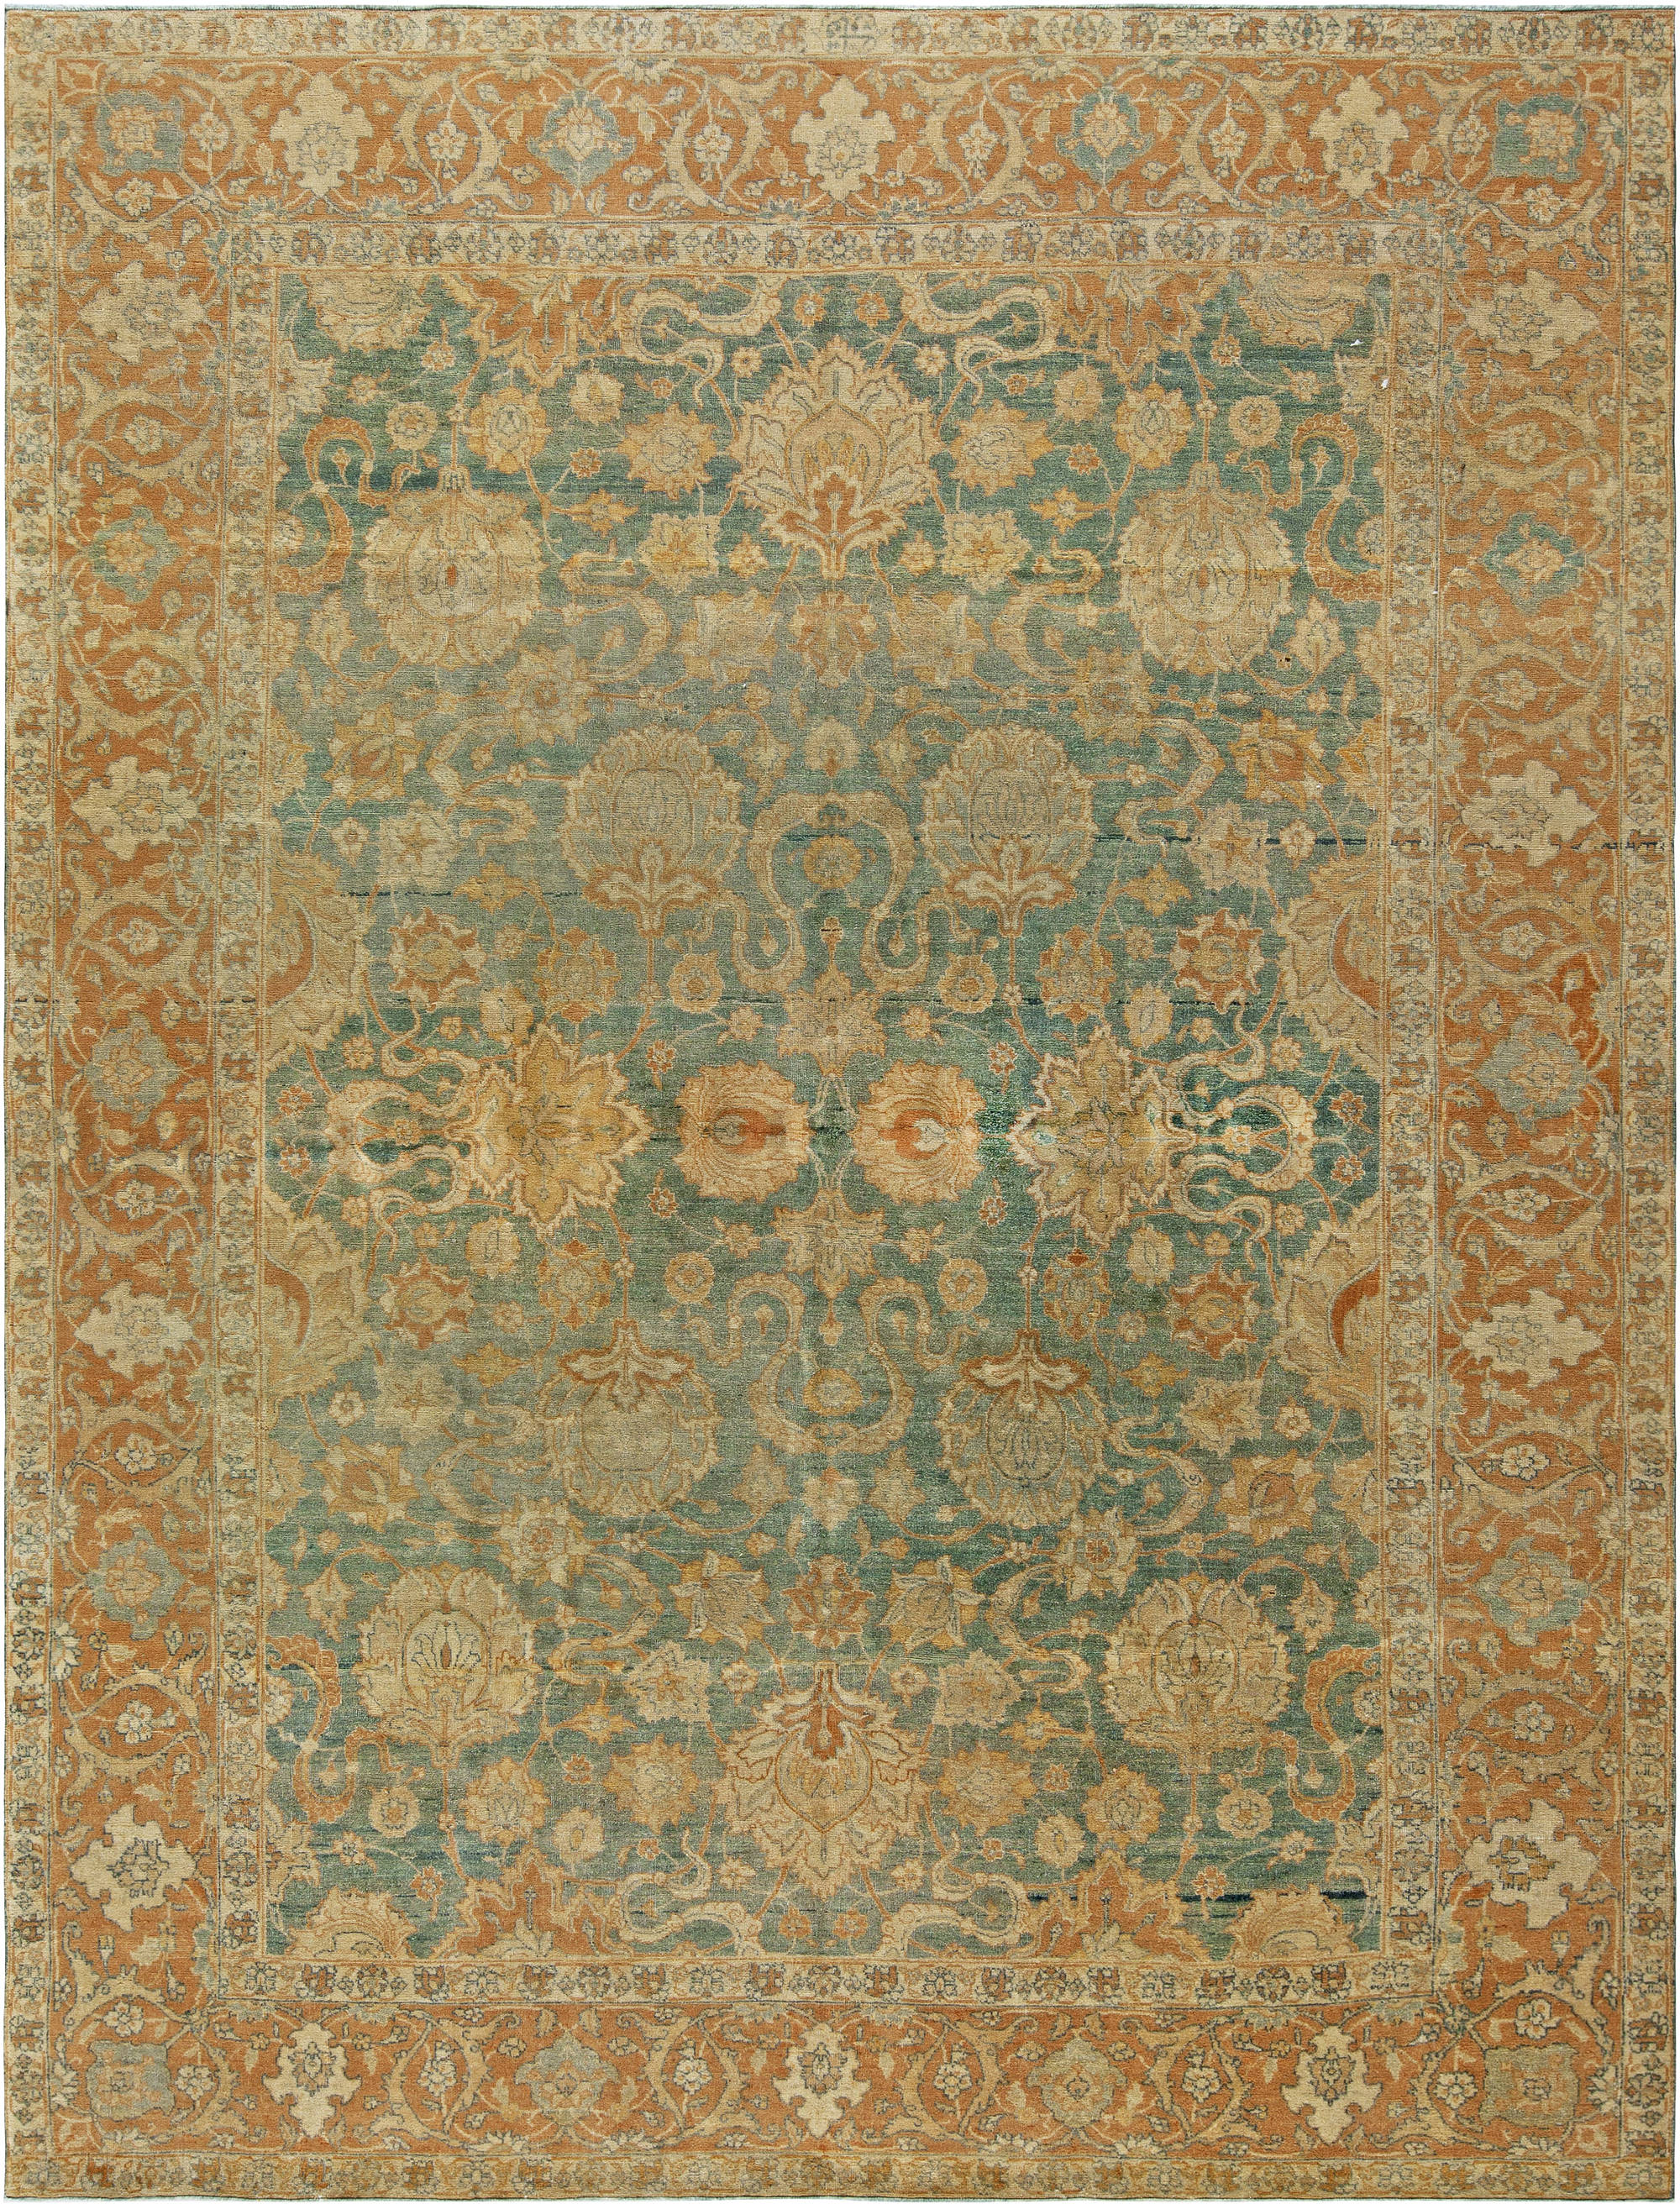 Antique Persian Tabriz Rug BB6799